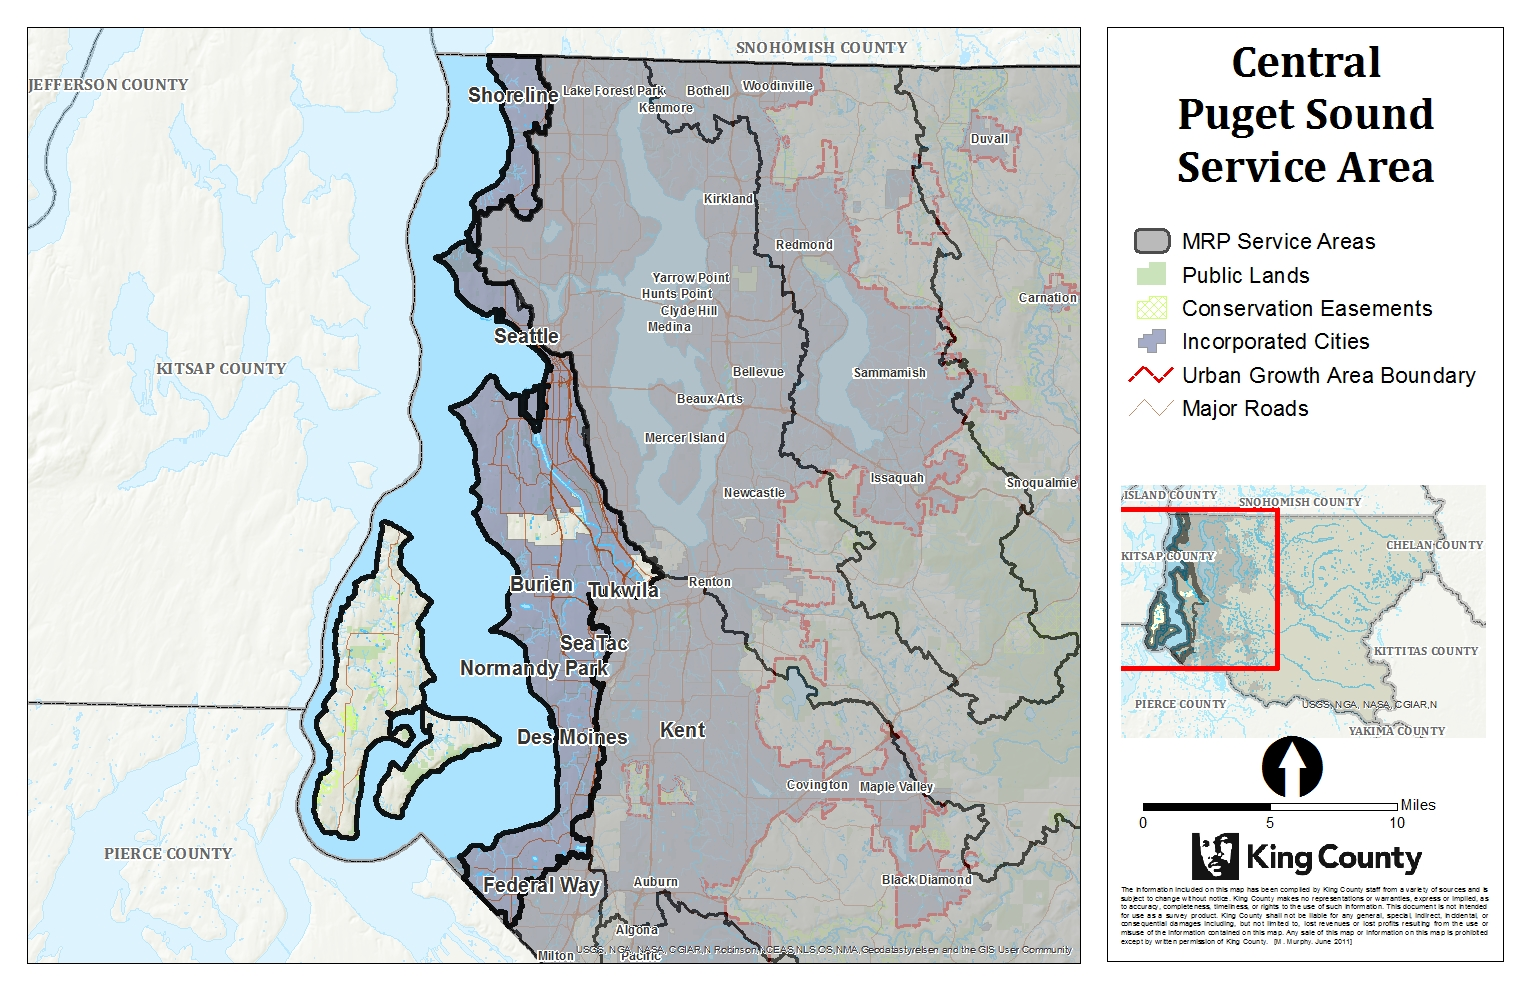 Map of Central Puget Sound Service Area for King County Mitigation Reserves Program